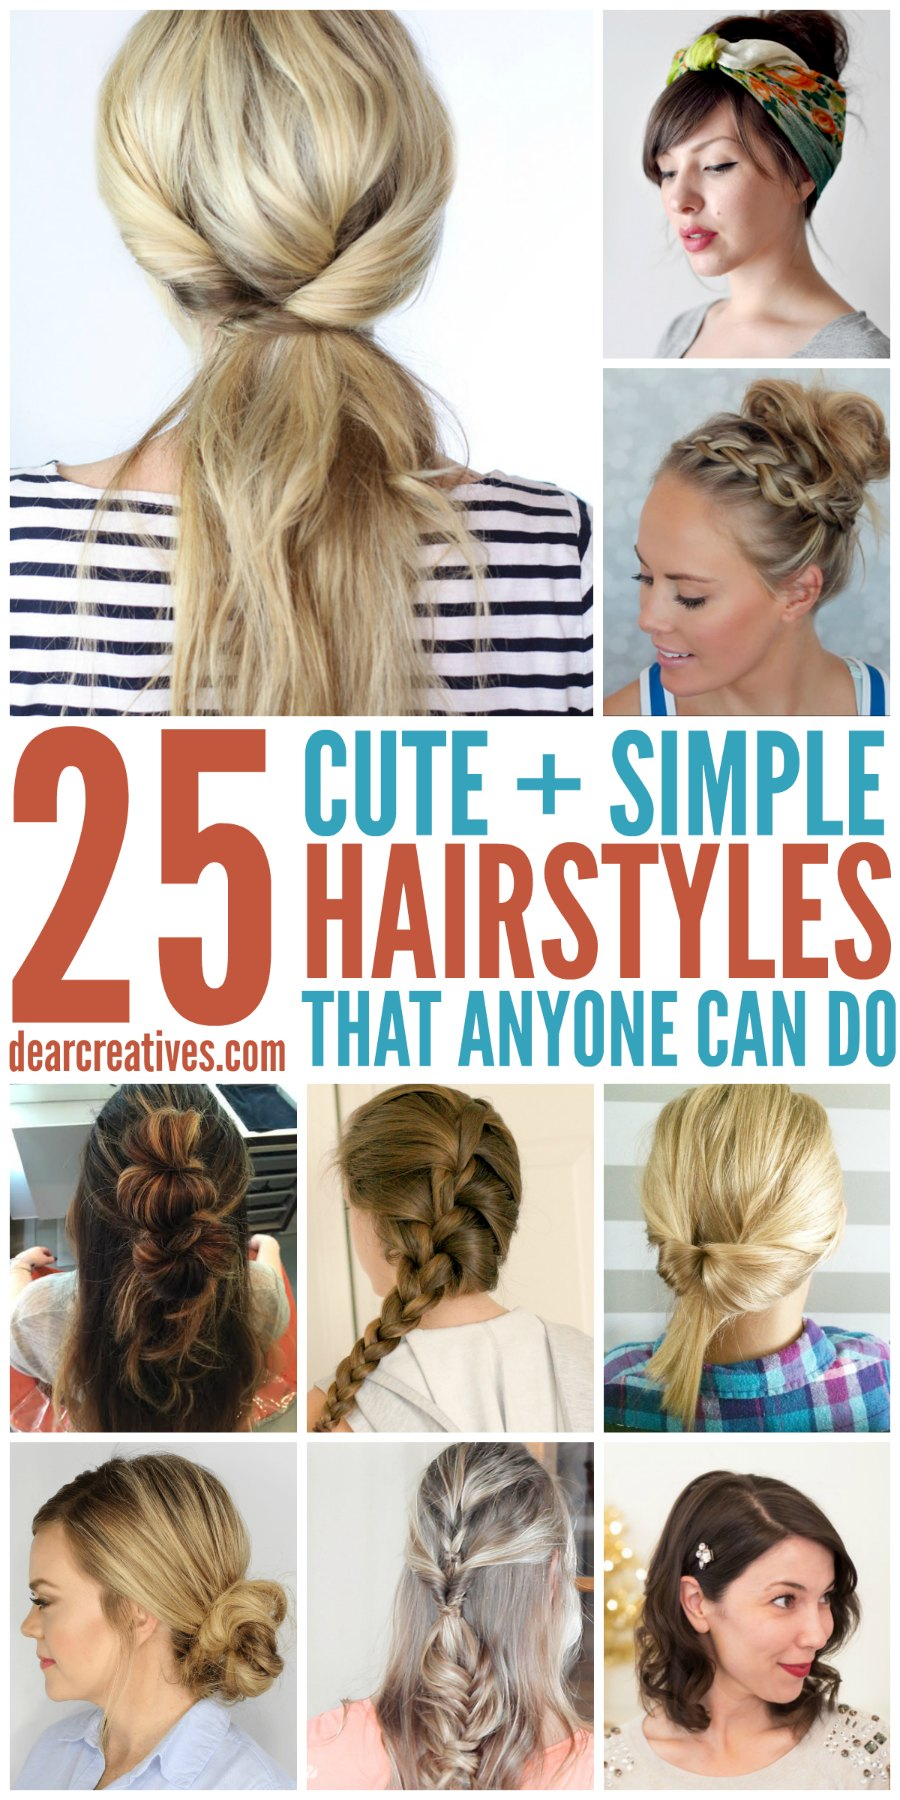 Best cute easy hairstyles to do yourself pictures styles ideas cute easy hairstyles you can do by yourself hairstyles by unixcode solutioingenieria Images